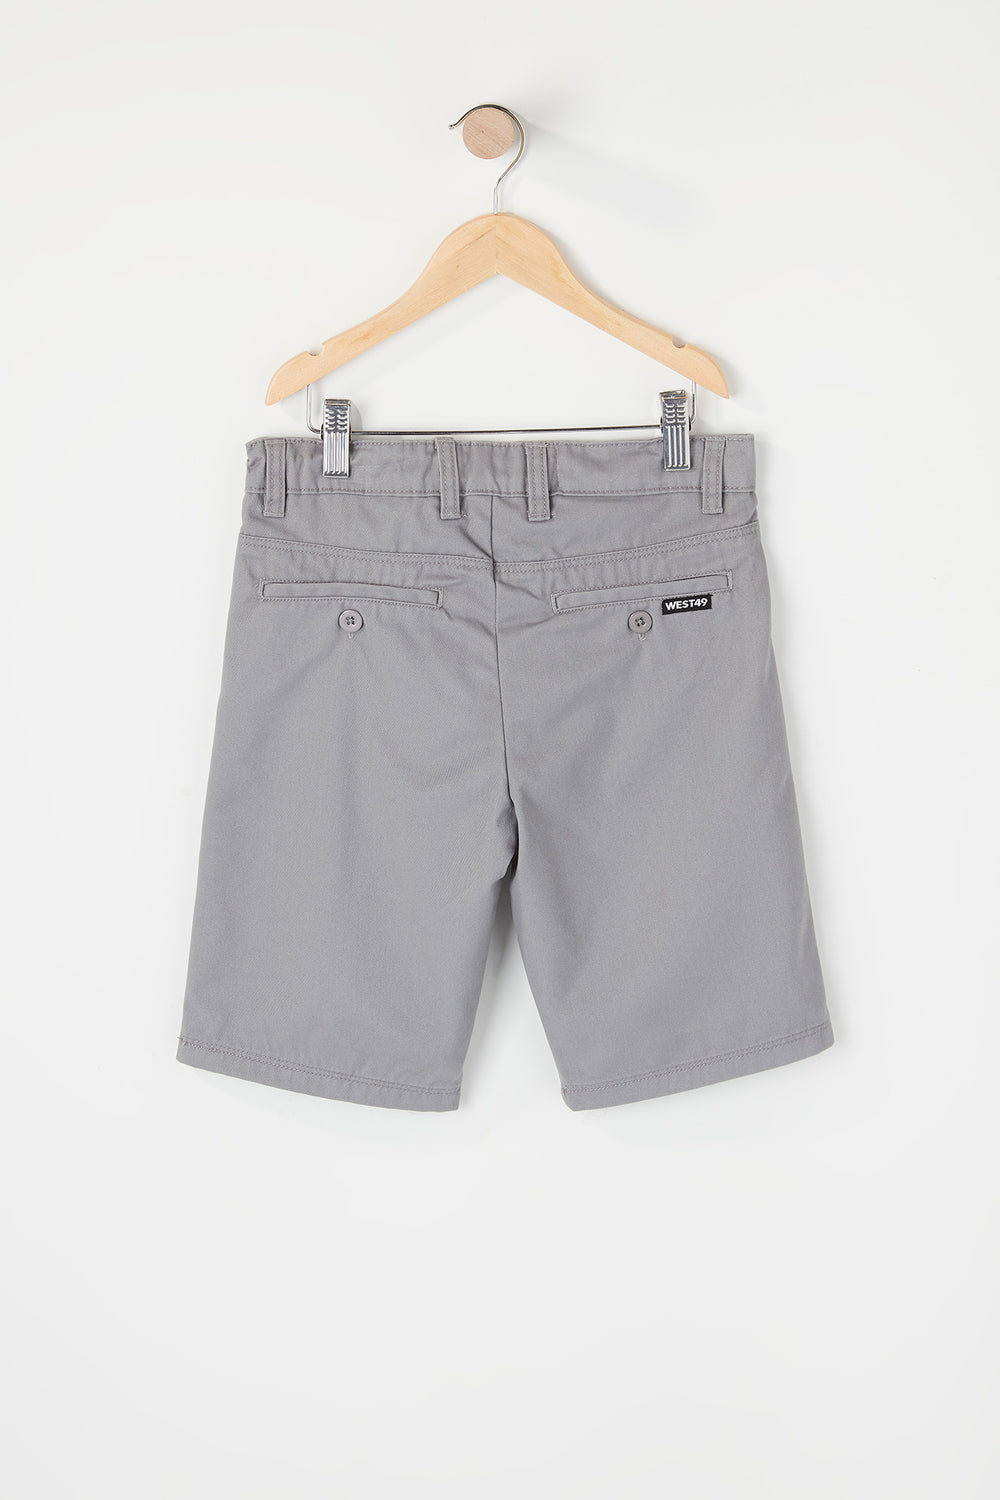 Short de Ville West49 Garçon Gris